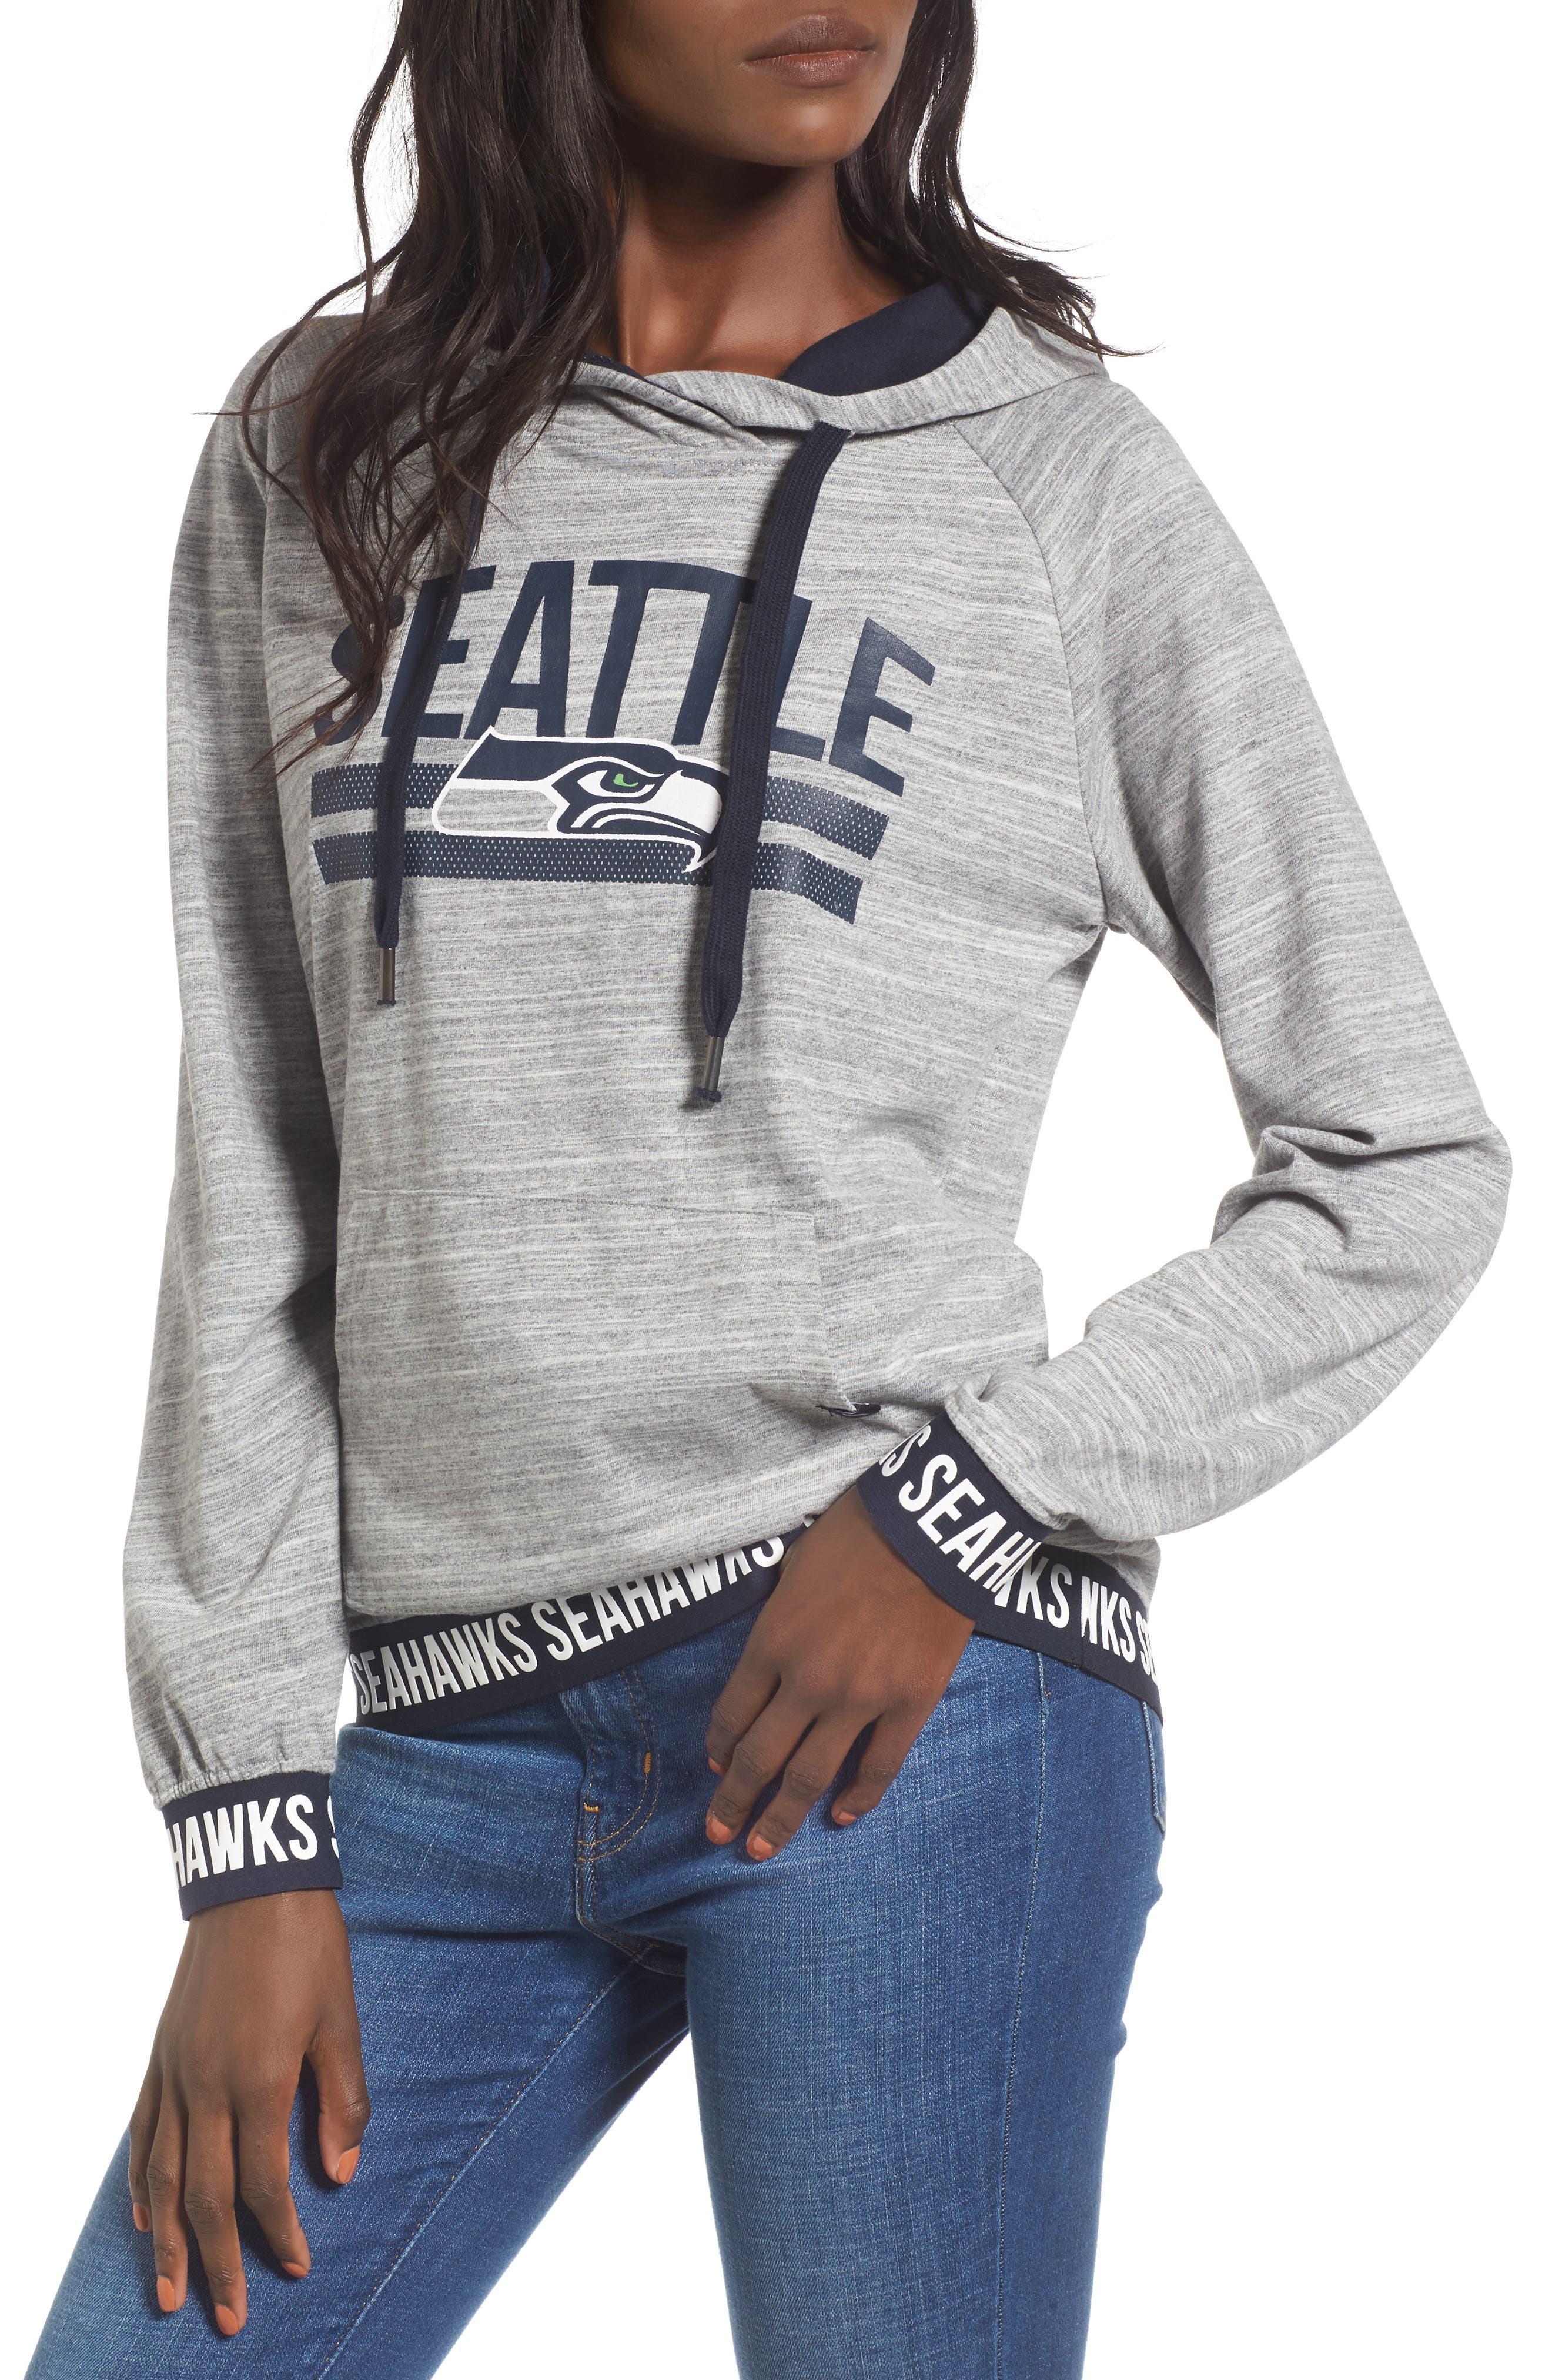 Revolve - Seattle Seahawks Hoodie,                             Main thumbnail 1, color,                             020